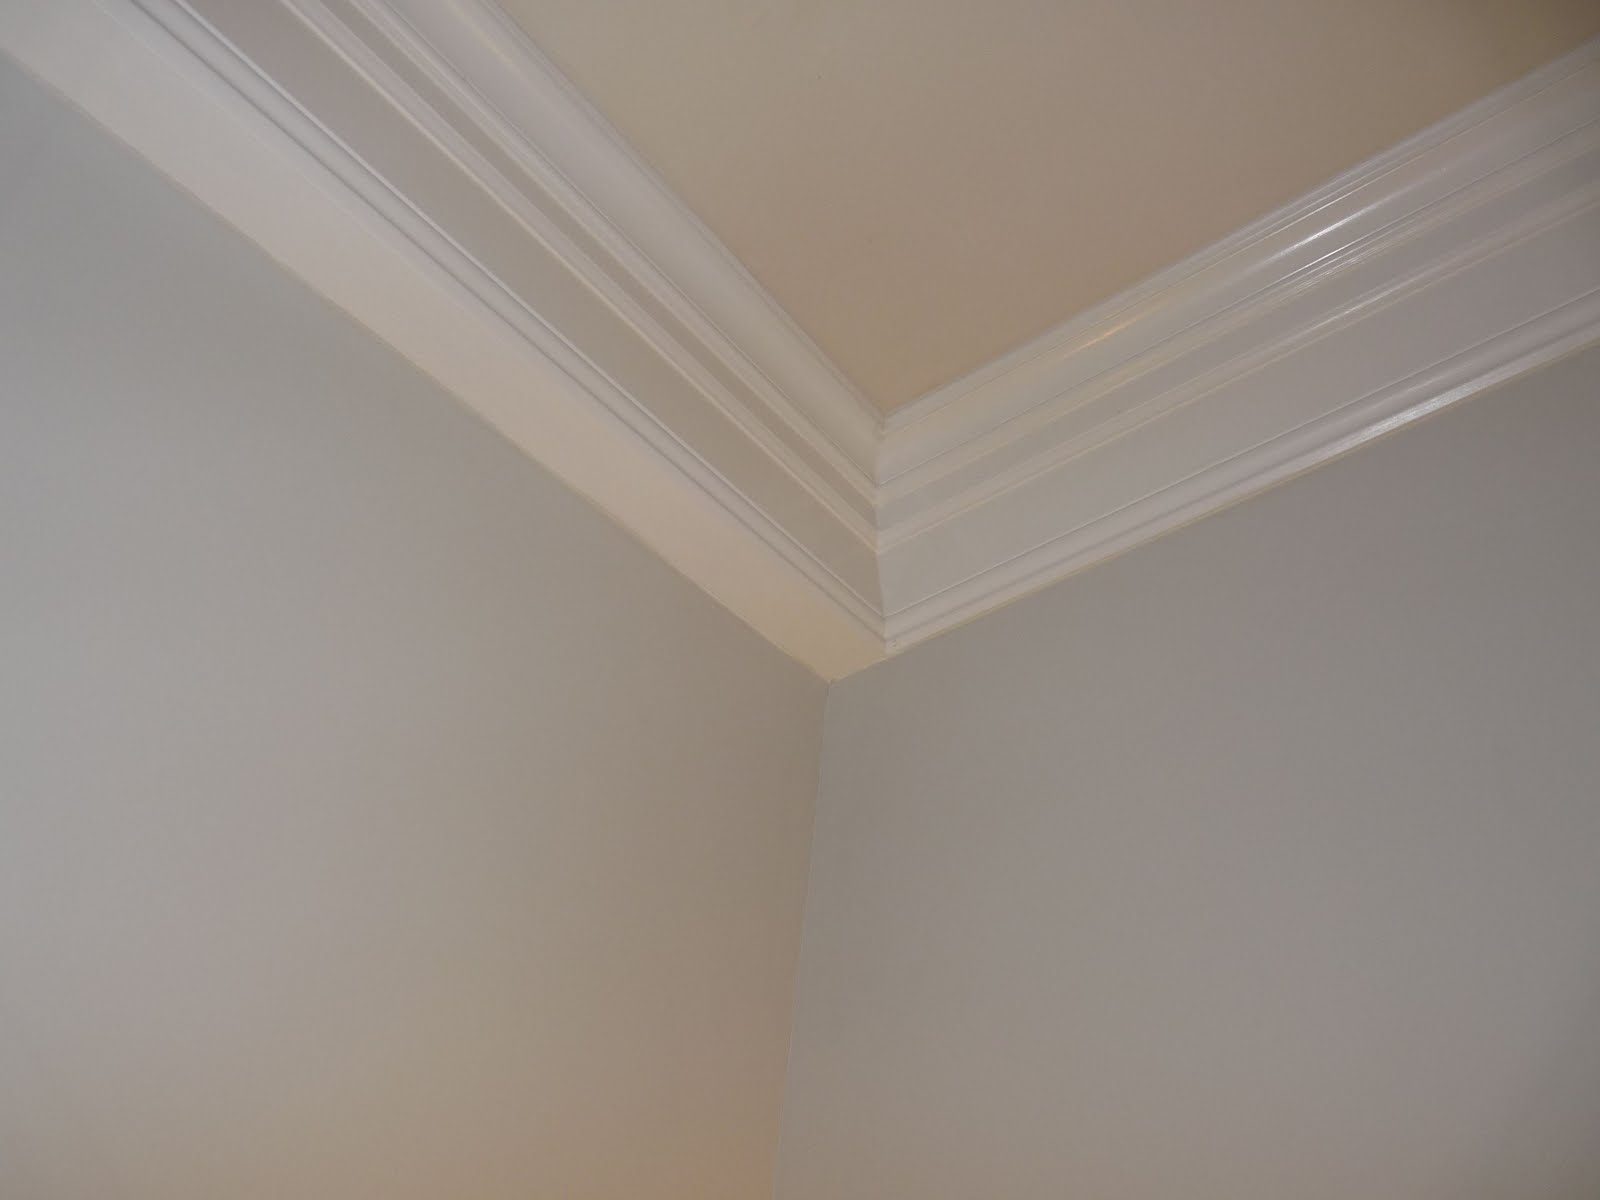 Chris hung crown molding which was a challenge due to the slanted 1600x1200